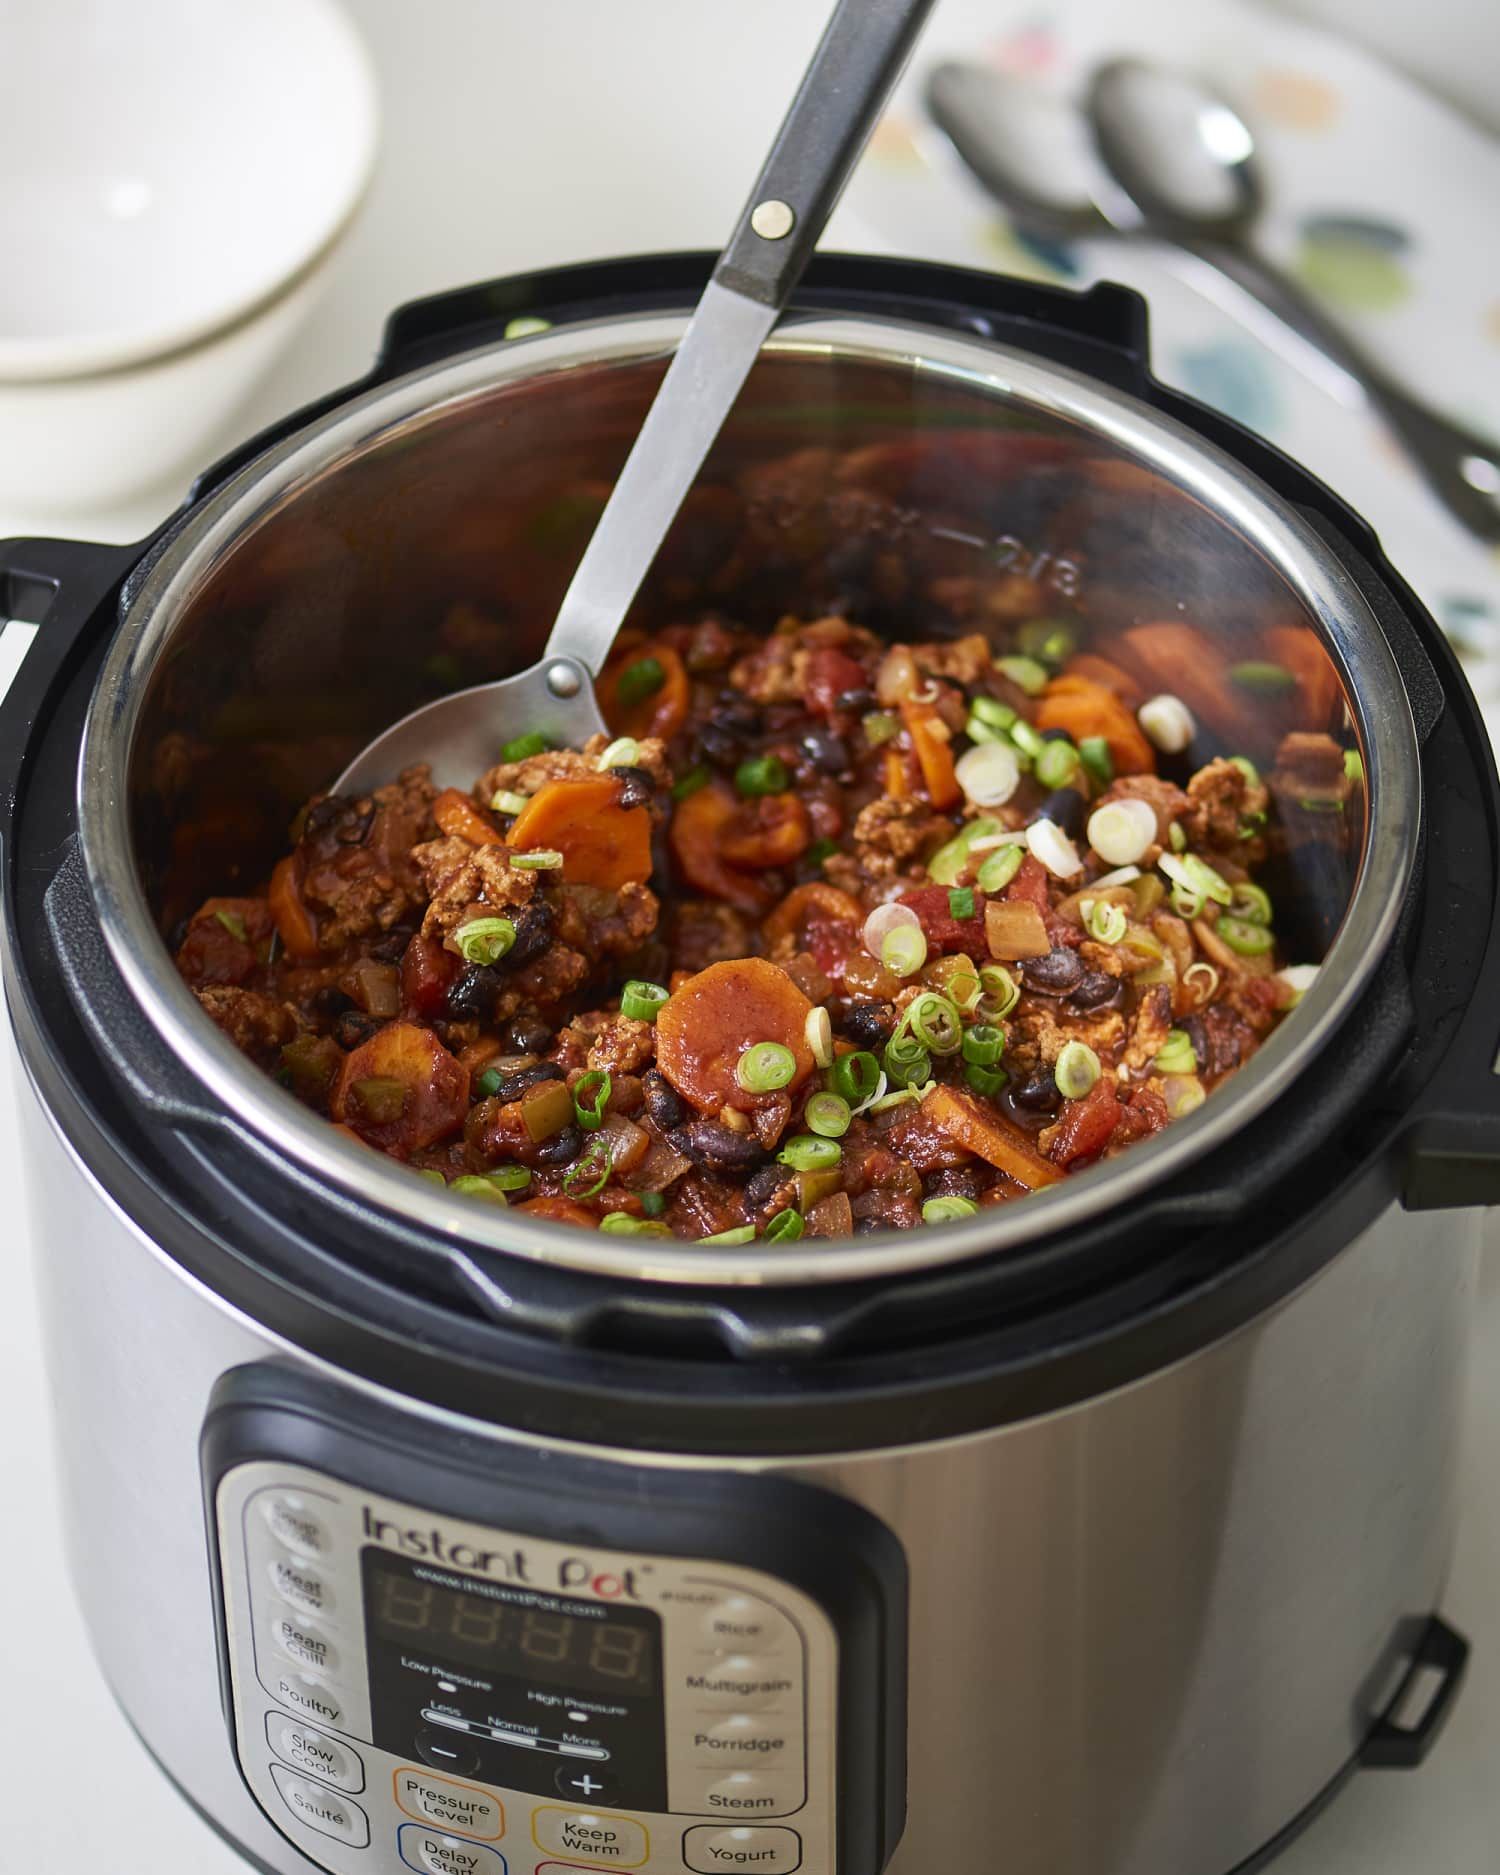 Recipe: Instant Pot Turkey Chili